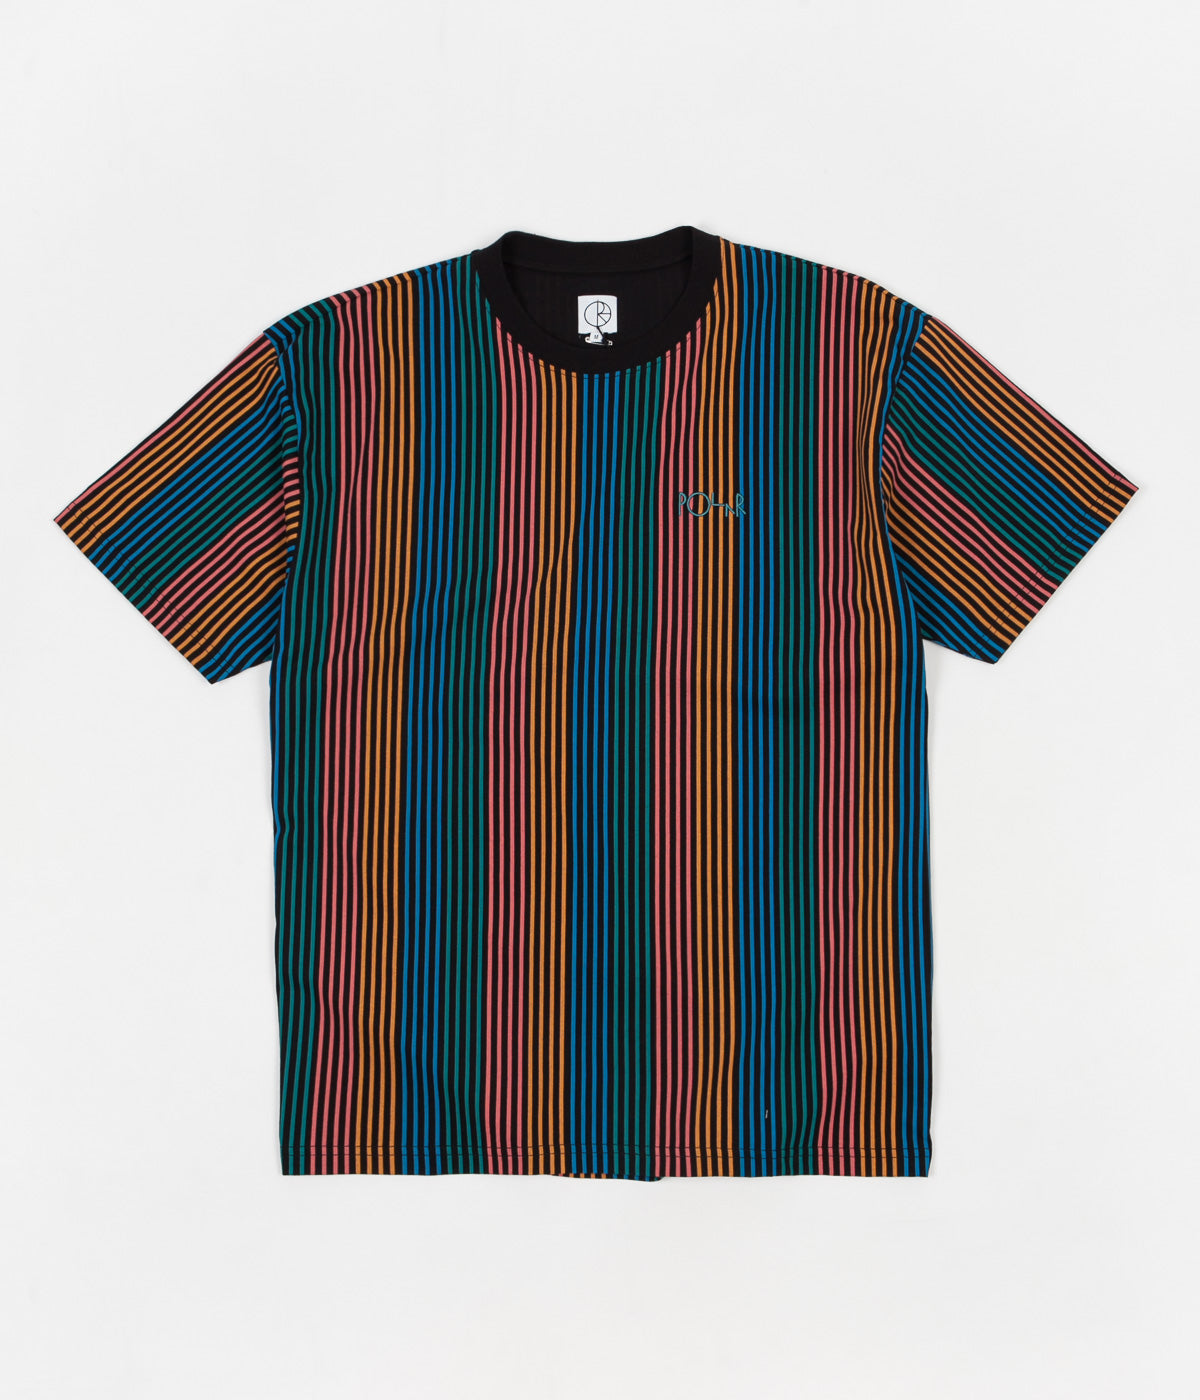 Polar Multicolour T-Shirt - Black